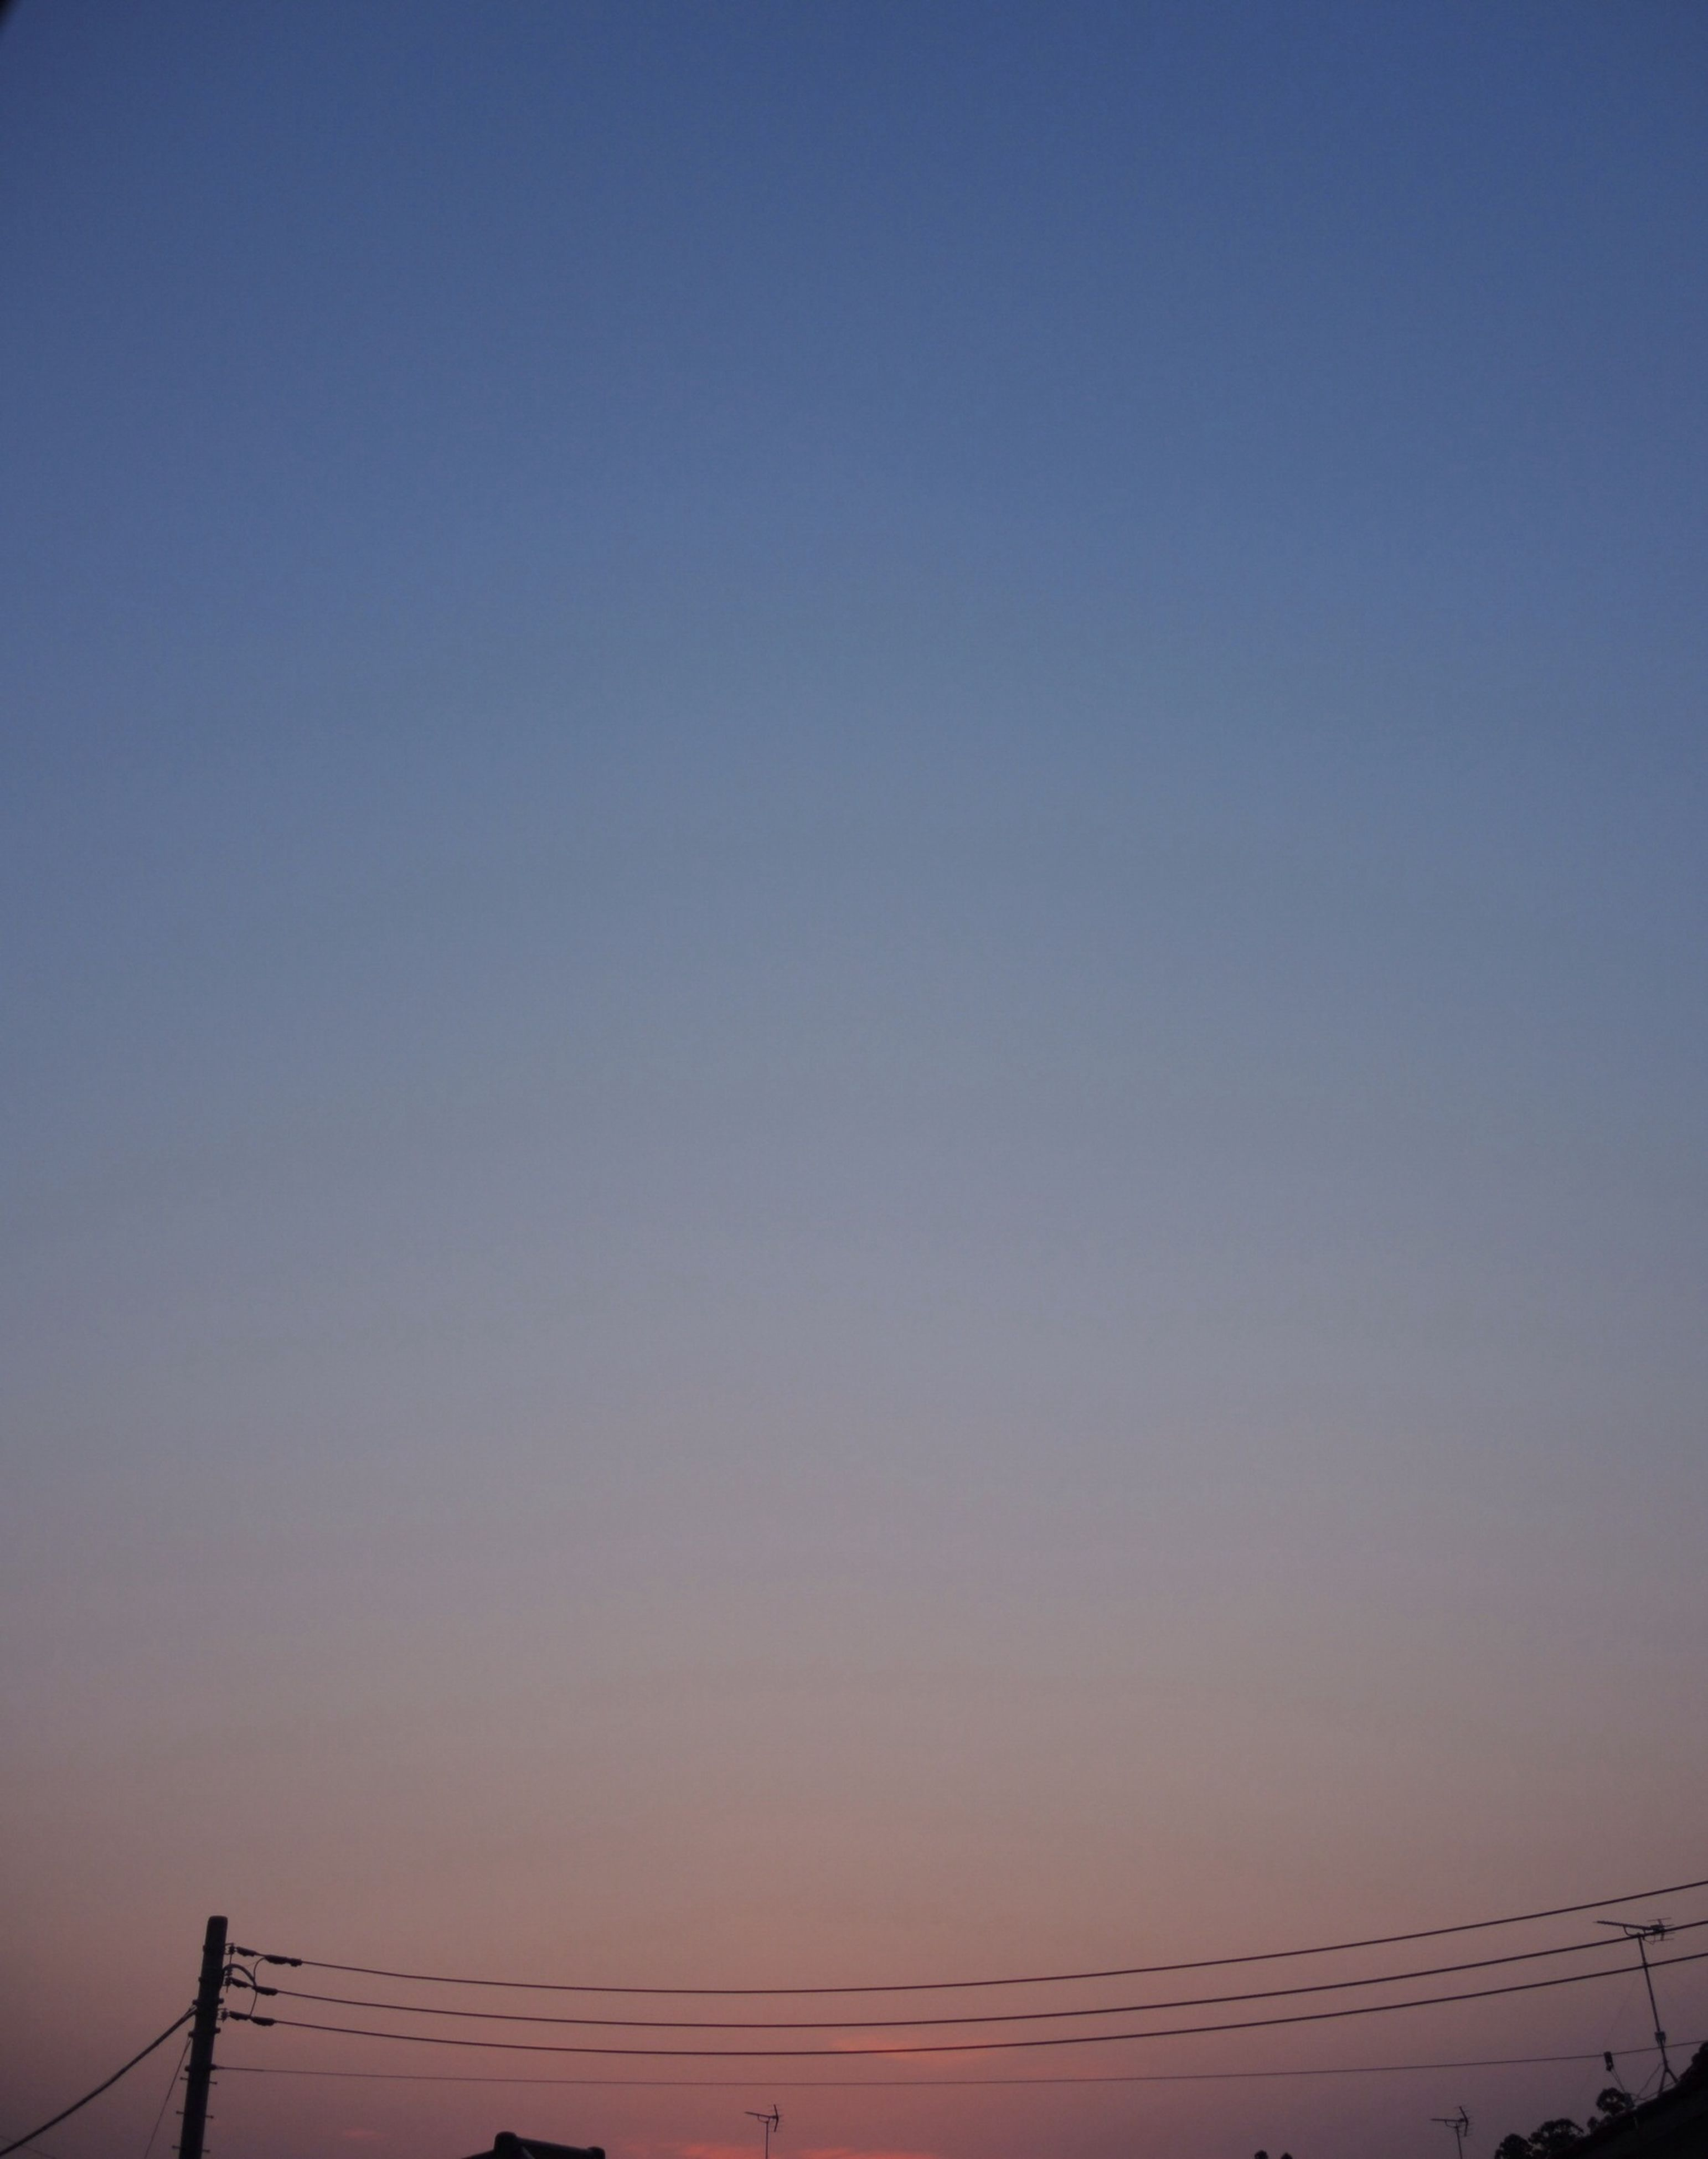 clear sky, silhouette, sunset, copy space, low angle view, tranquility, blue, scenics, nature, tranquil scene, beauty in nature, dusk, sky, connection, outdoors, power line, no people, idyllic, orange color, electricity pylon